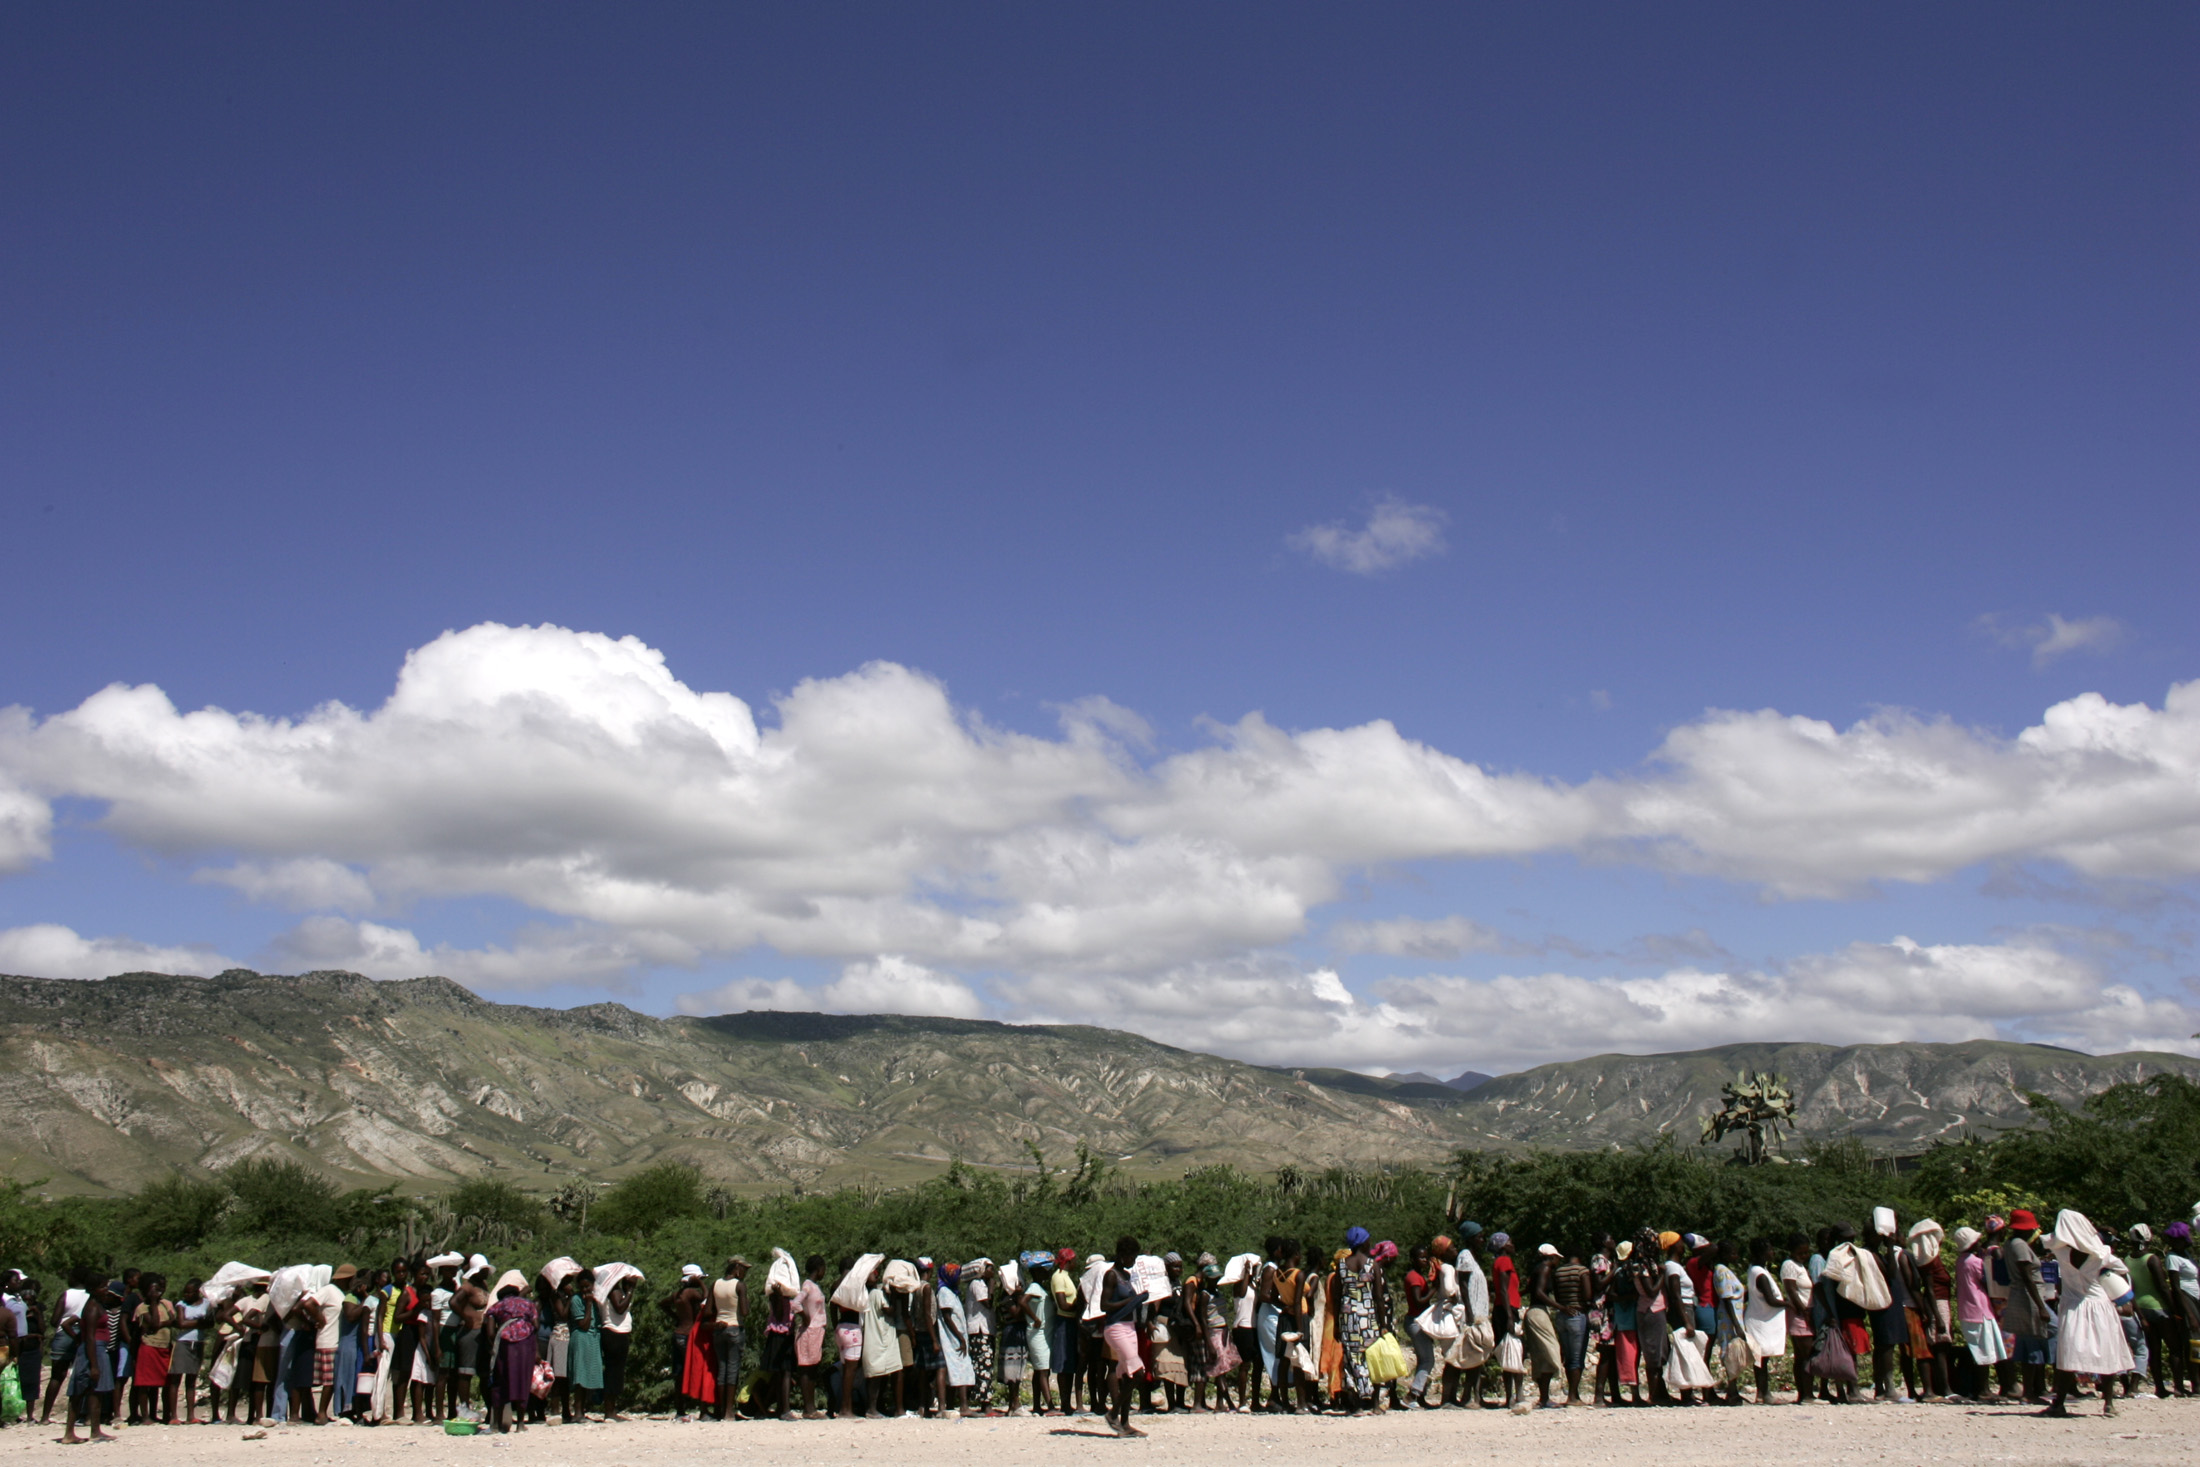 """Haitian women stand in line waiting to get food donated by the NGO CARE and World Food Program """"WFP"""" after flooding in the town of Gonaives"""